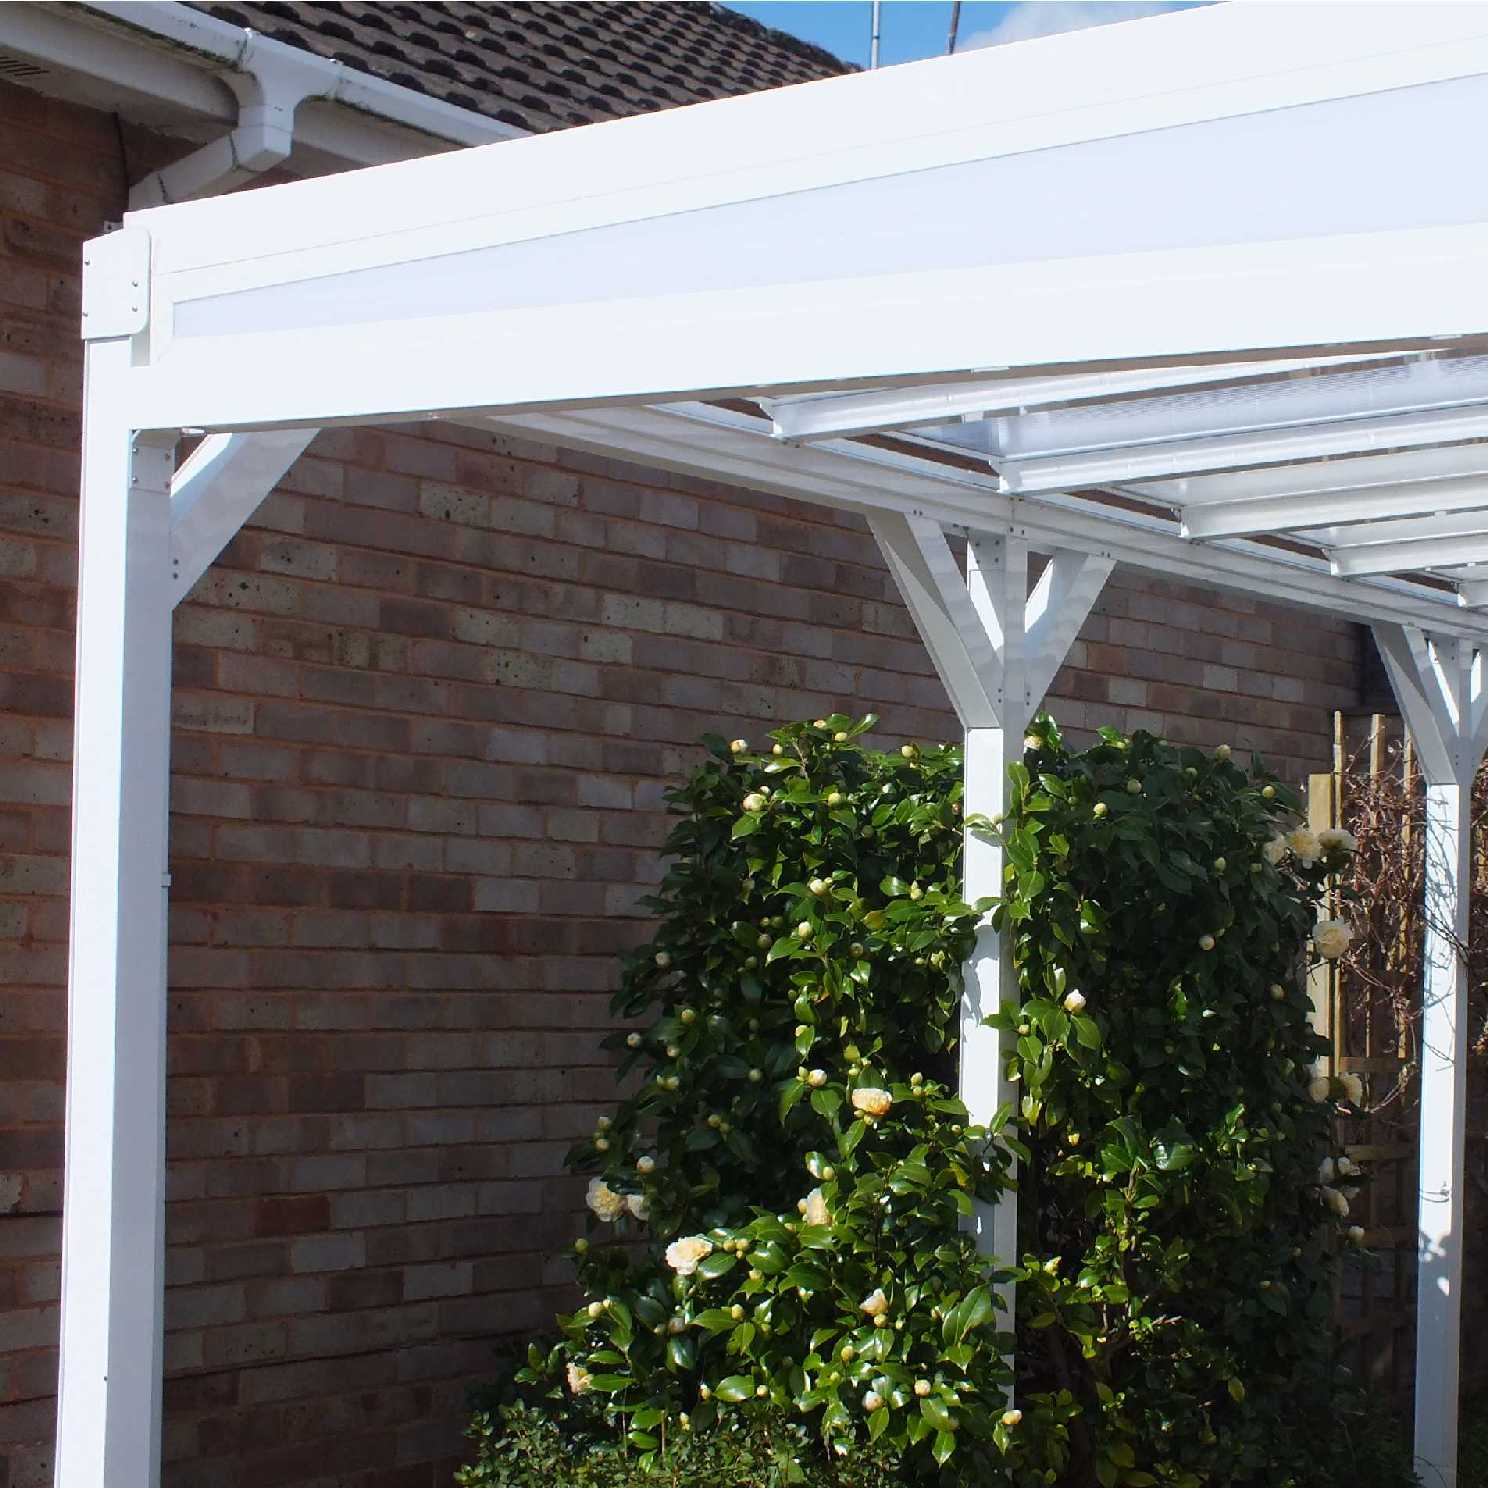 Omega Smart Lean-To Canopy with 16mm Polycarbonate Glazing - 2.1m (W) x 3.5m (P), (2) Supporting Posts from Omega Build